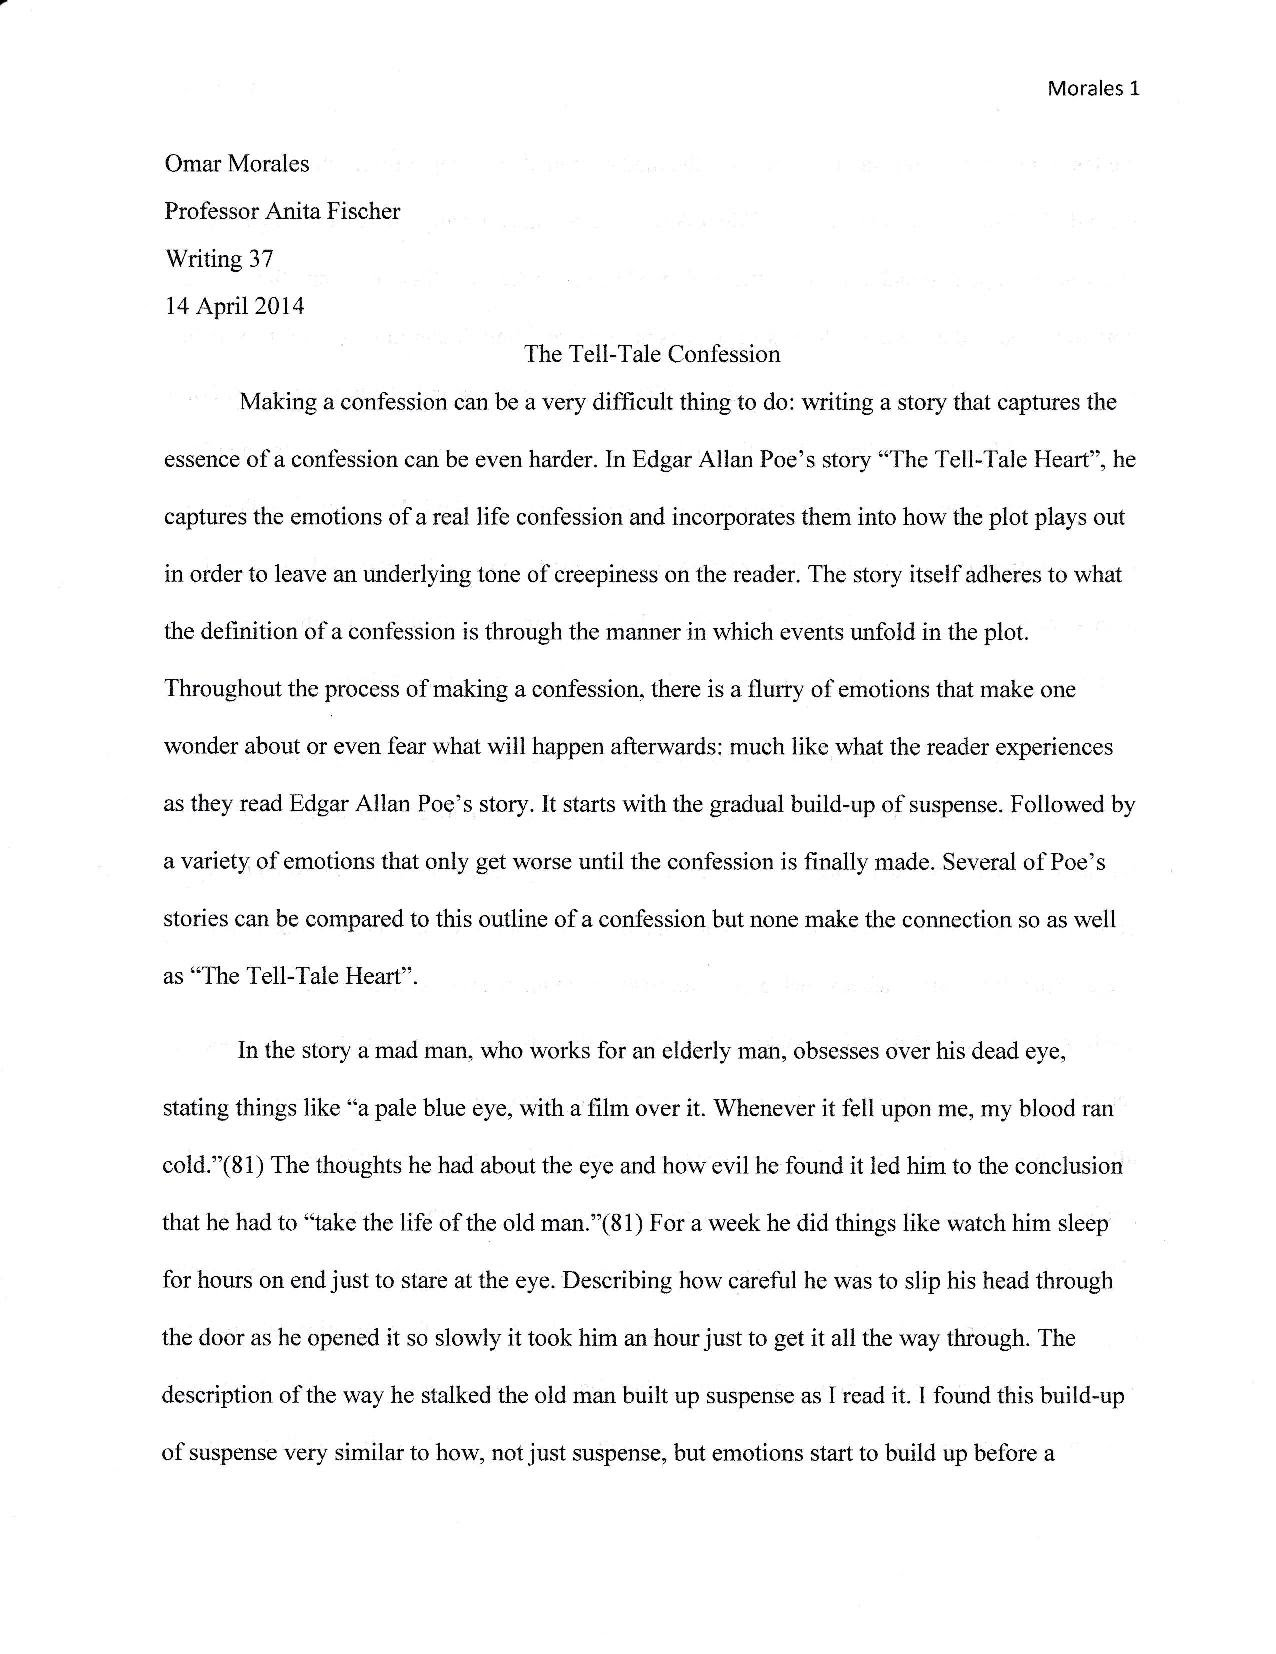 critical reading essay draft omar morales writing portfolio writing didn t so much show potential but it showed where i had room for improvement